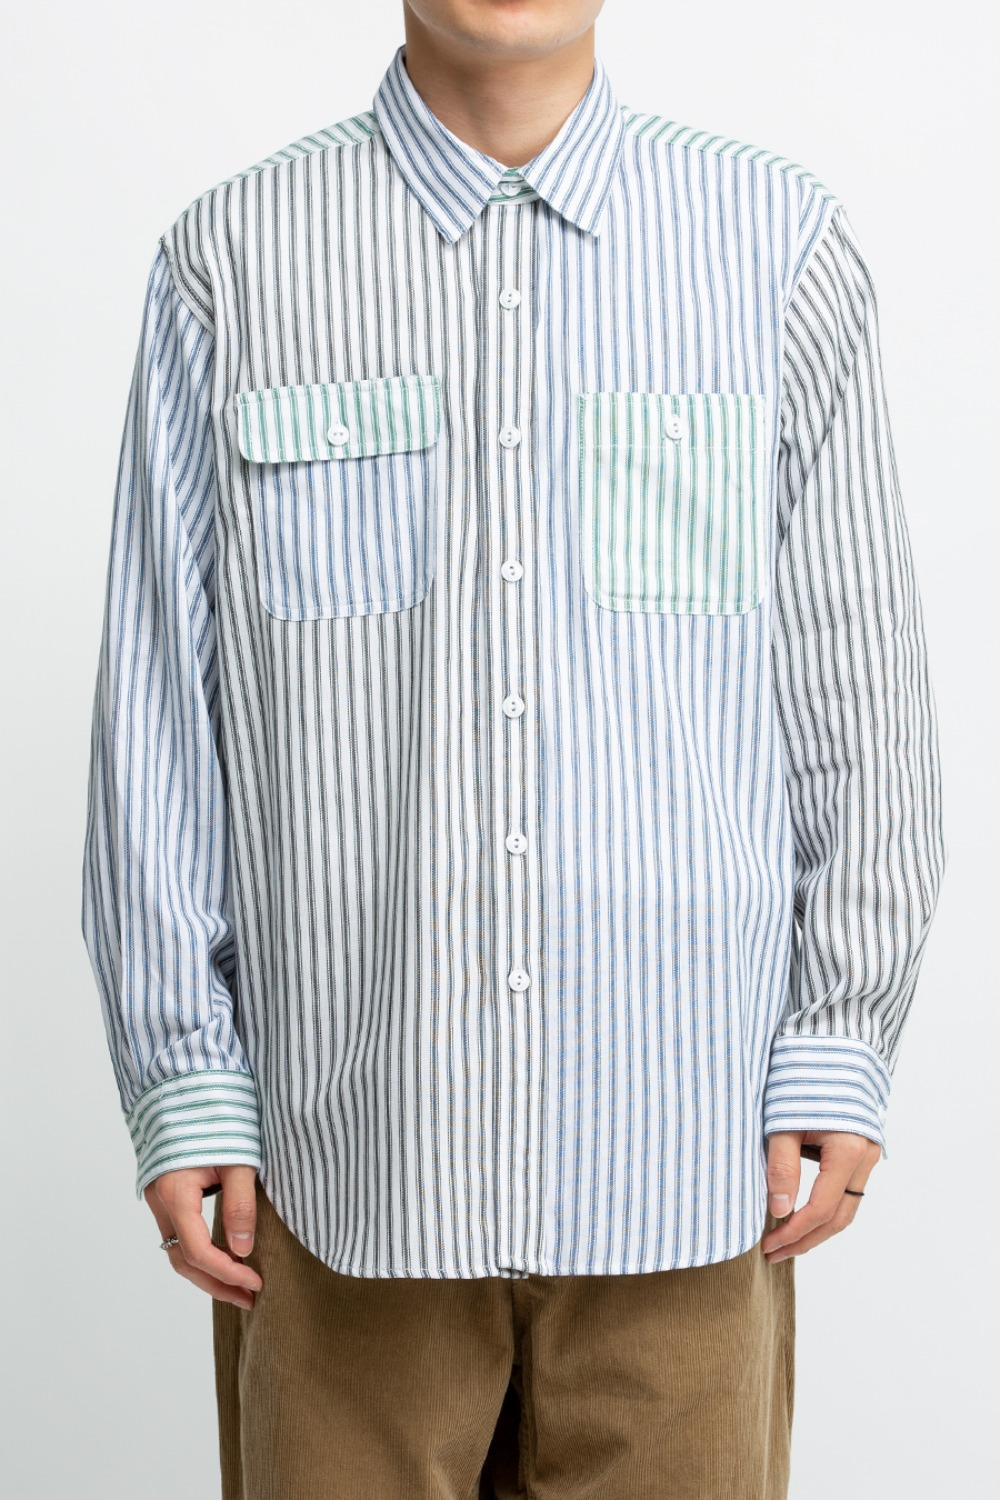 UTILITY SHIRT COMBO BLUE WHITE COTTON TICKING STRIPE